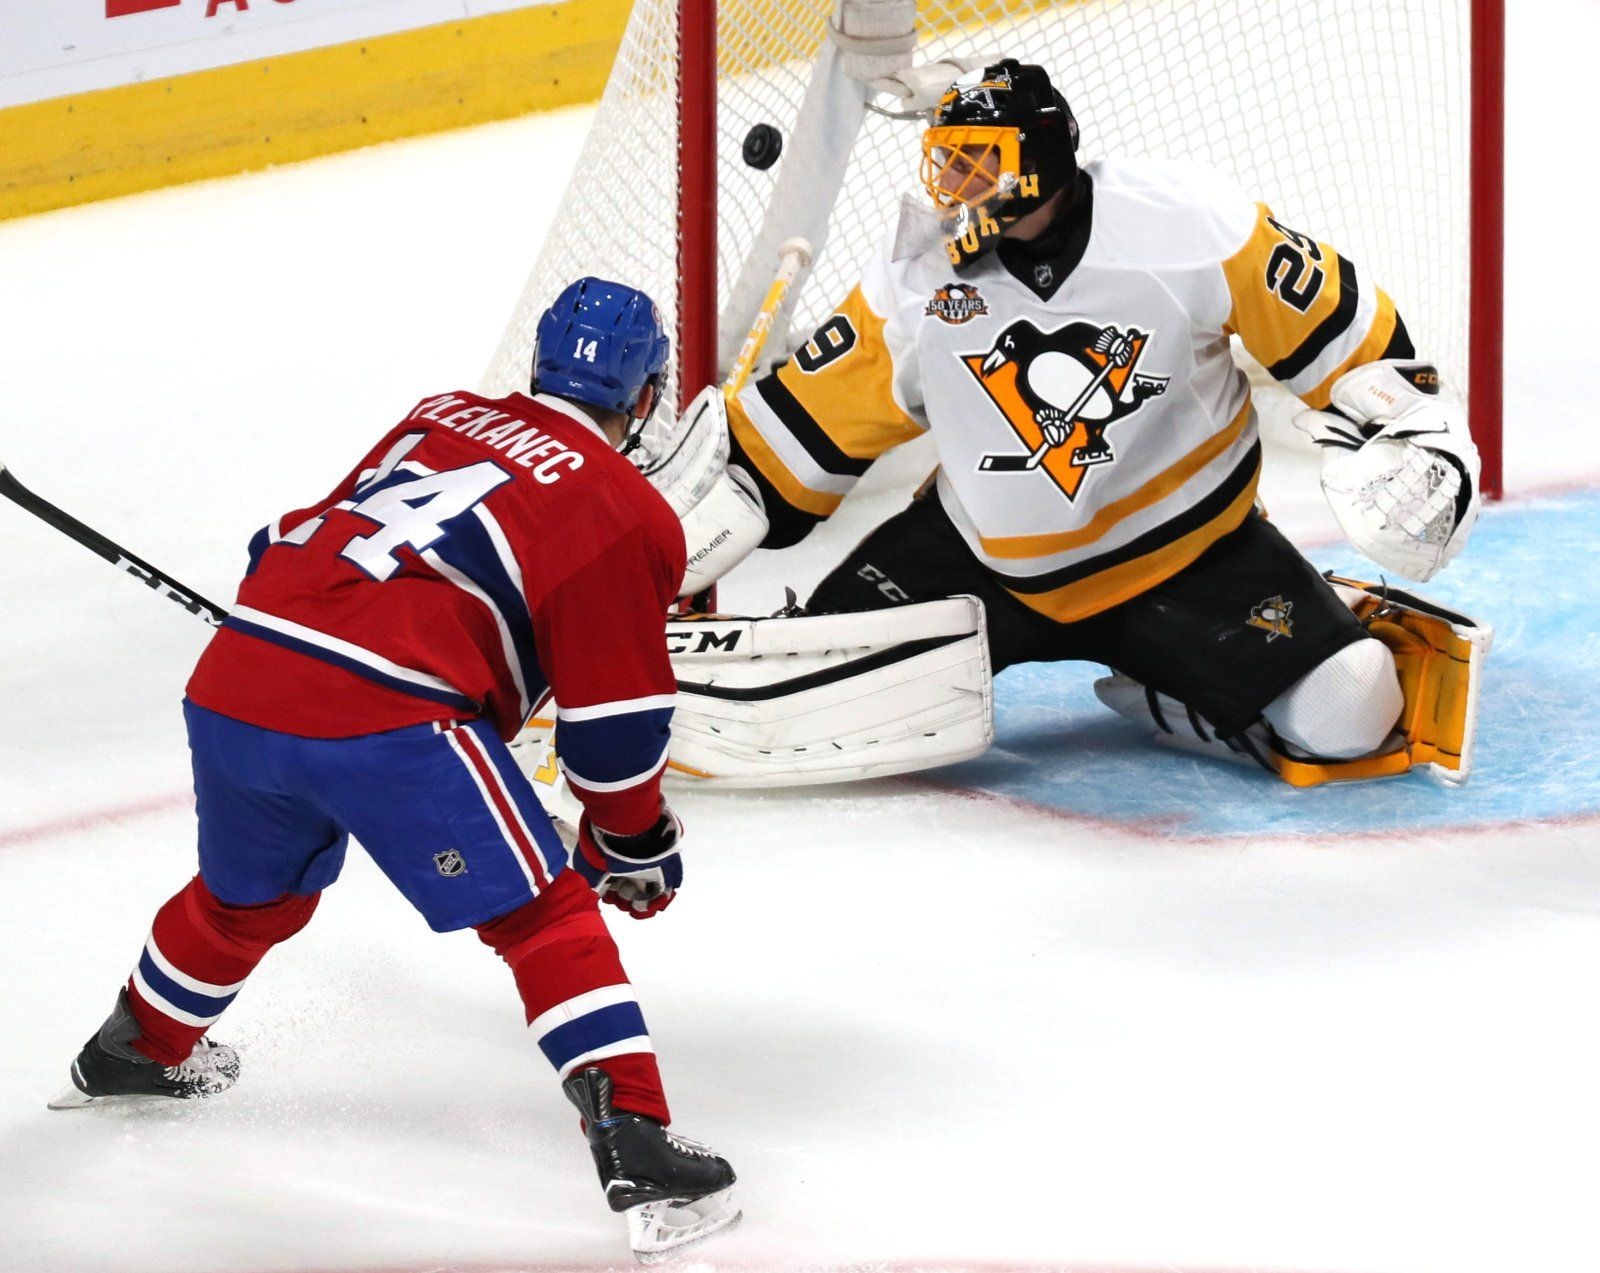 Sling TV adds NHL Network to its addon Sports Extra